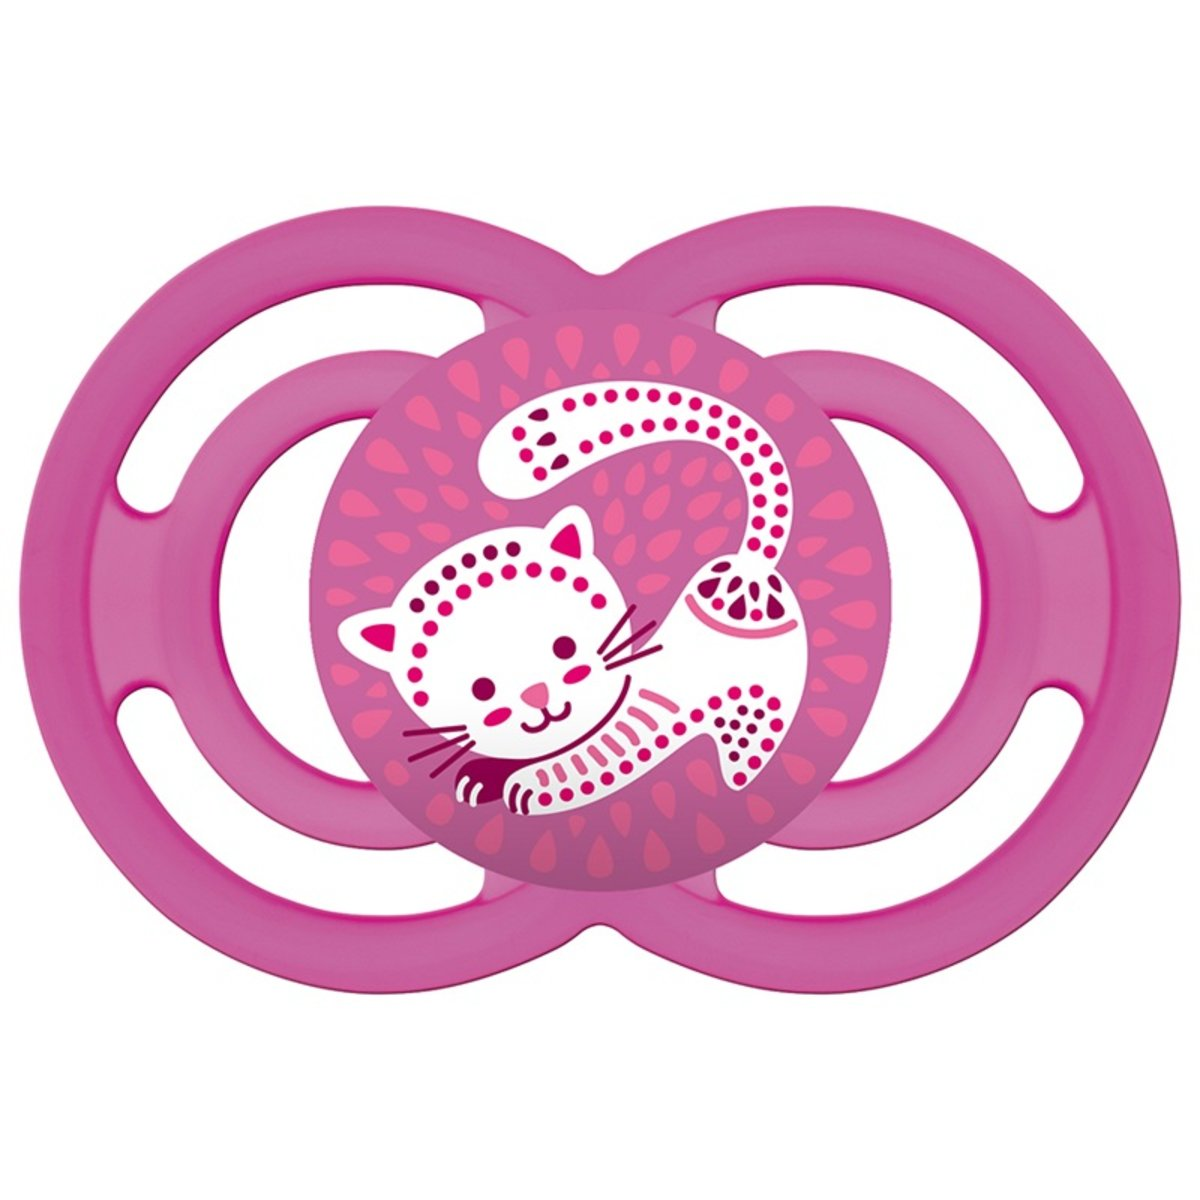 MAM Soother - Perfect 6m + (1pc) (Pink)